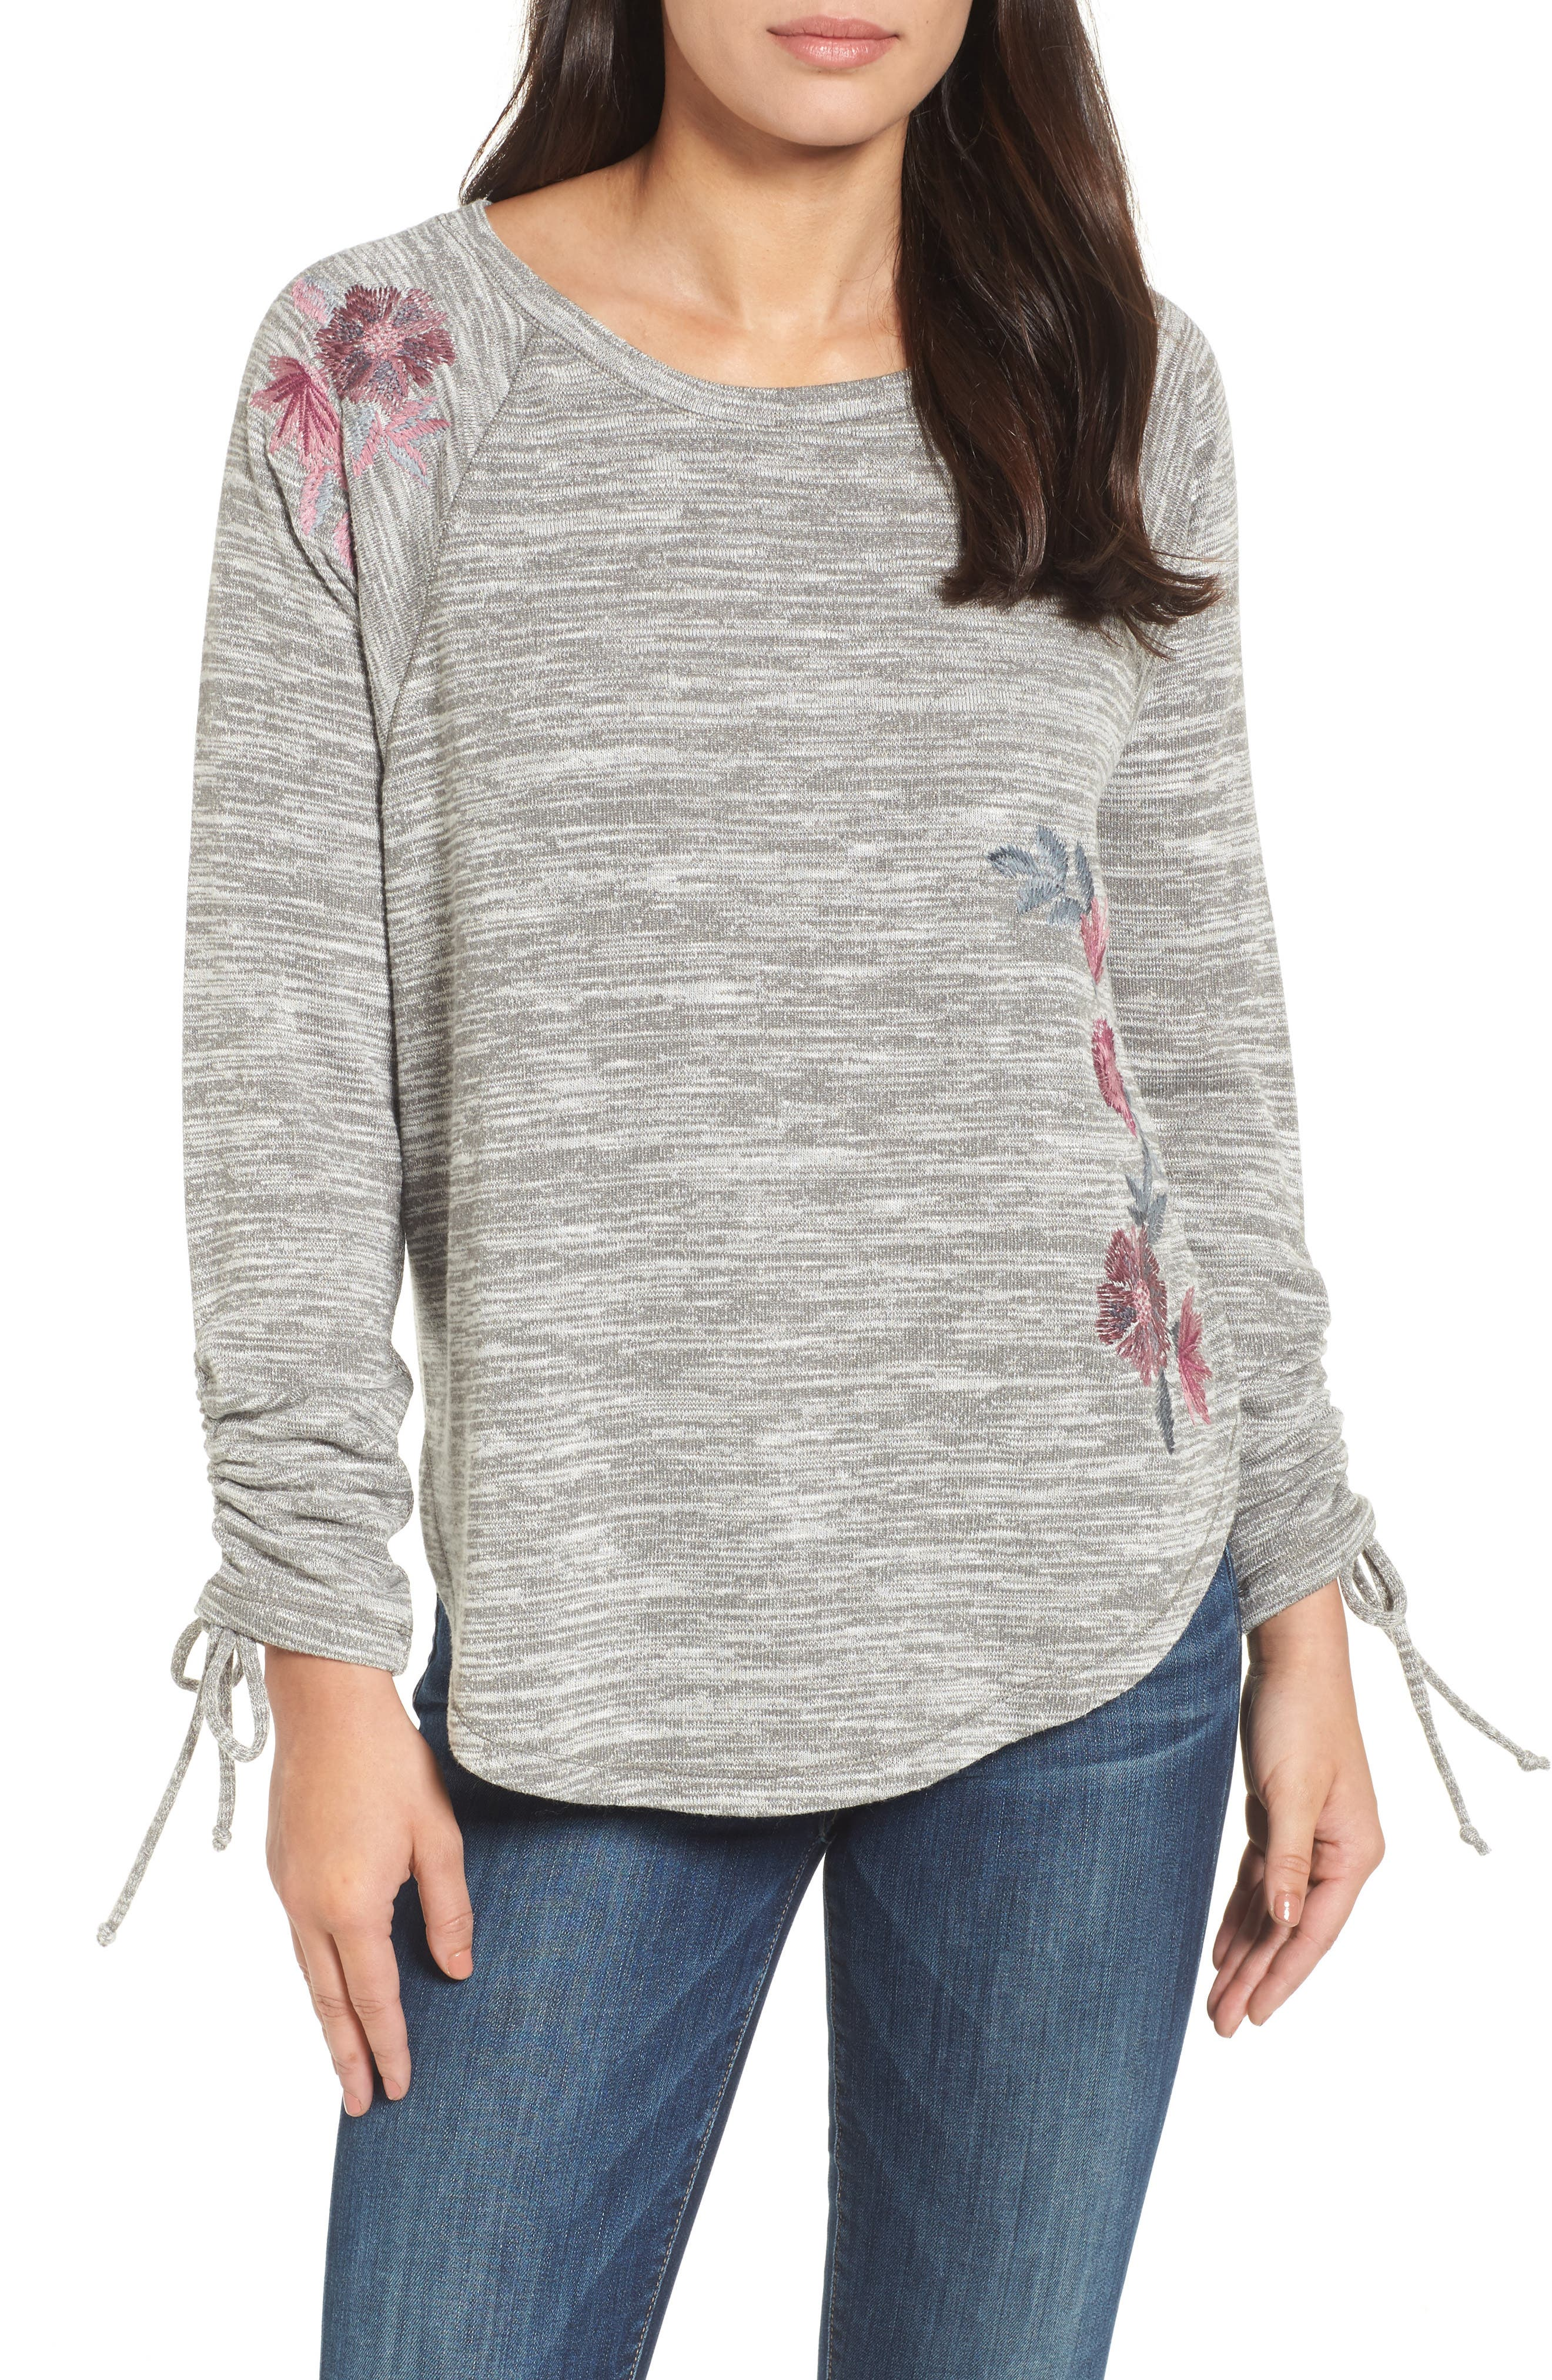 Hacci Embroidered Sweatshirt,                         Main,                         color, Grey Heather